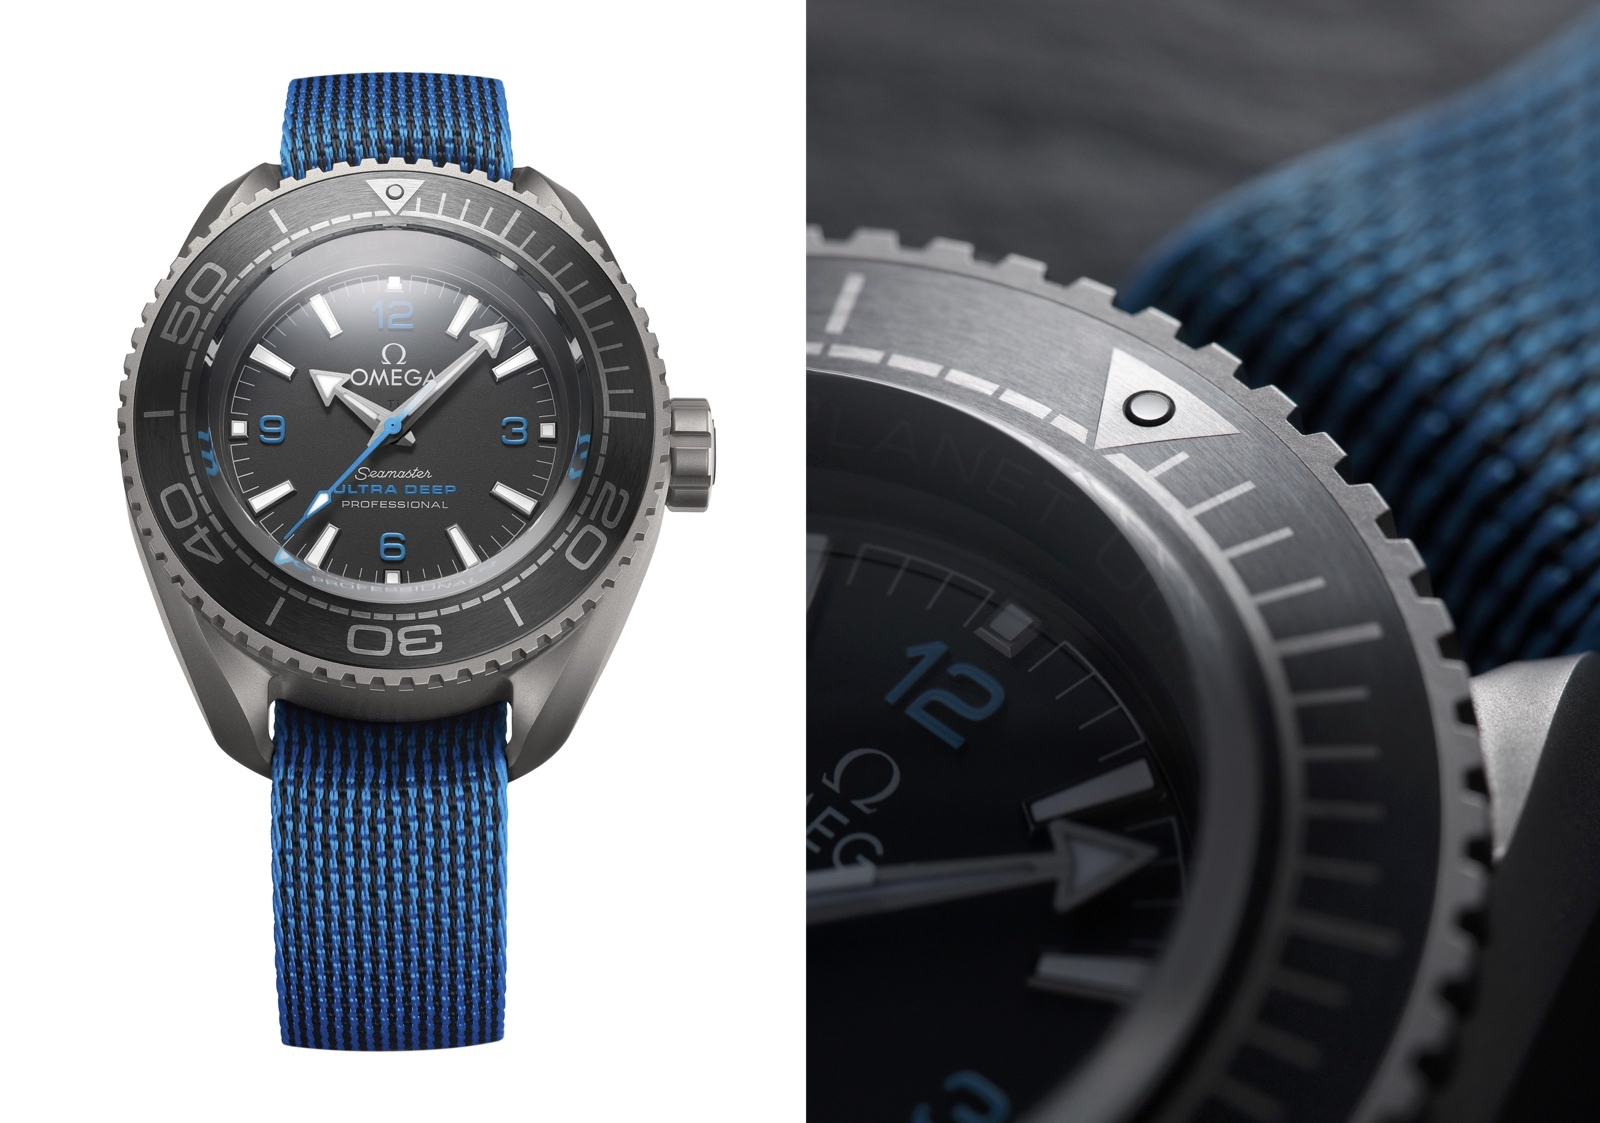 Omega-Seamaster-Planet-Ocean-Ultra-Deep-Professional-Details-1